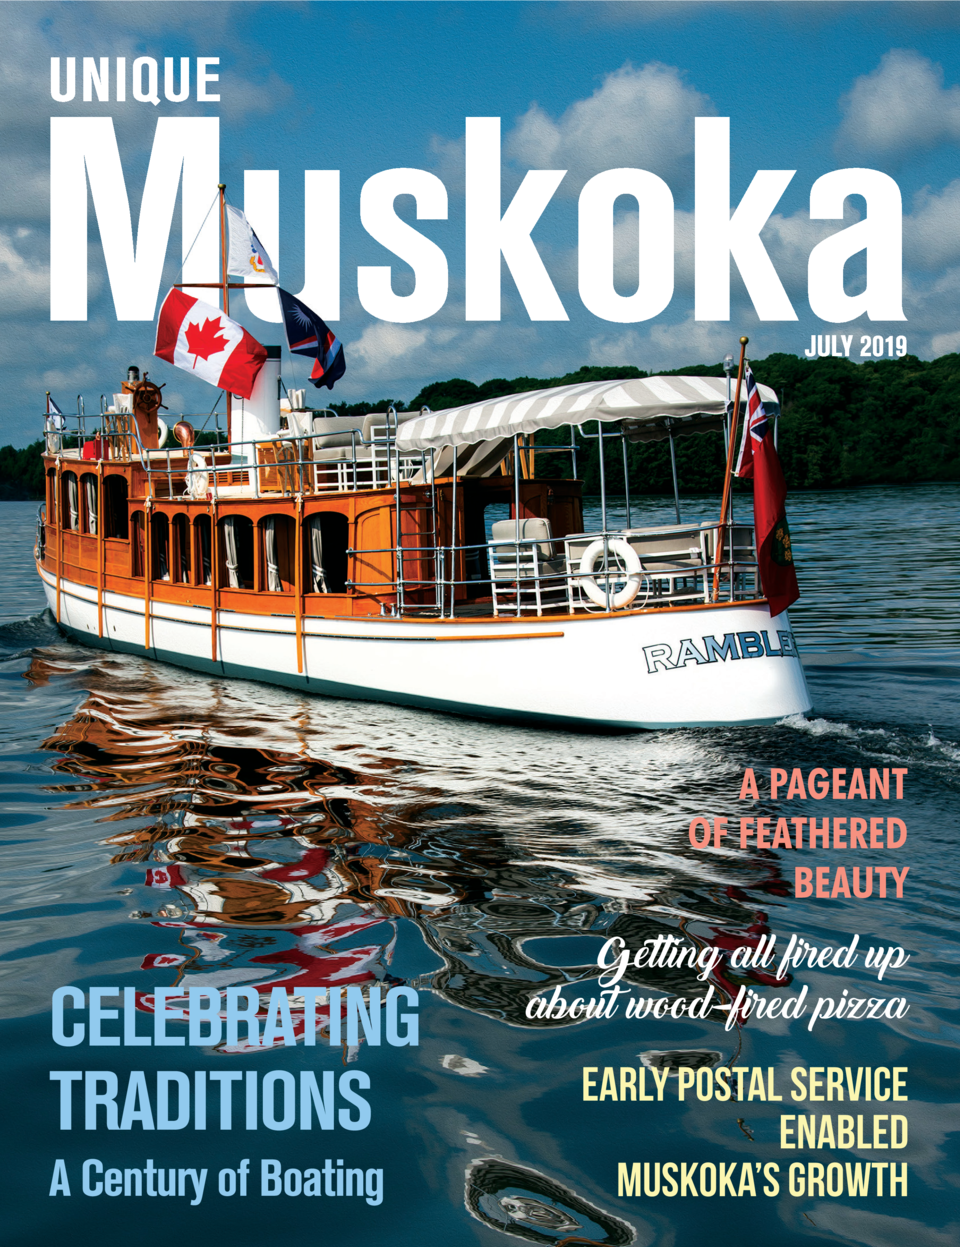 JULY 2019  CELEBRATING TRADITIONS A Century of Boating  Getting all fired up about wood-fired pizza  EARLY POSTAL SERVICE ...